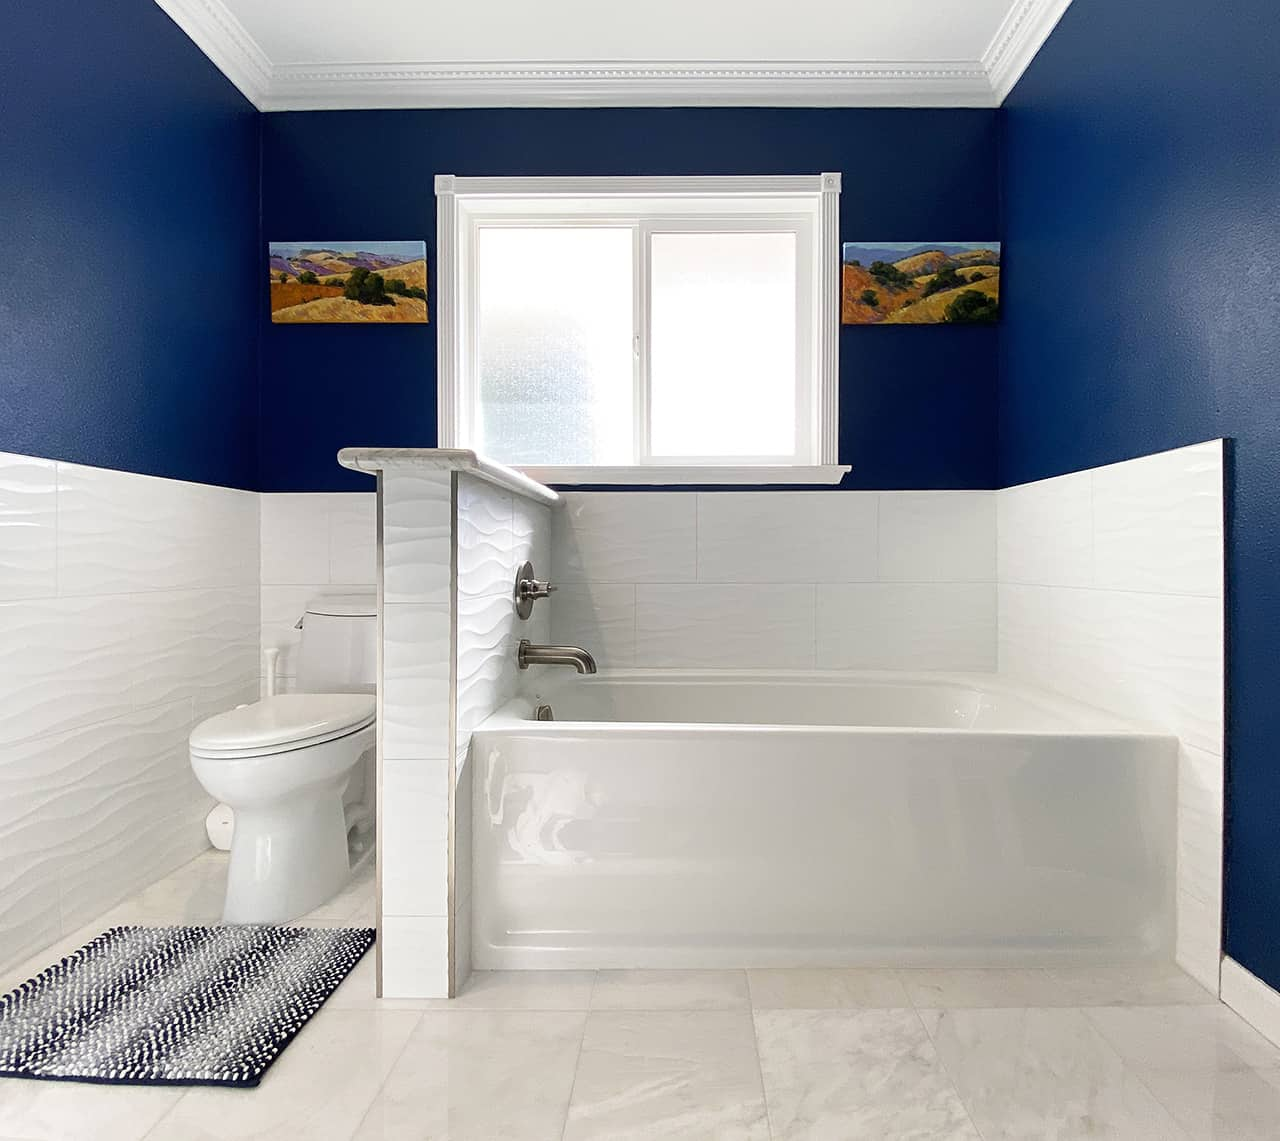 Stylish bathroom in blue and white